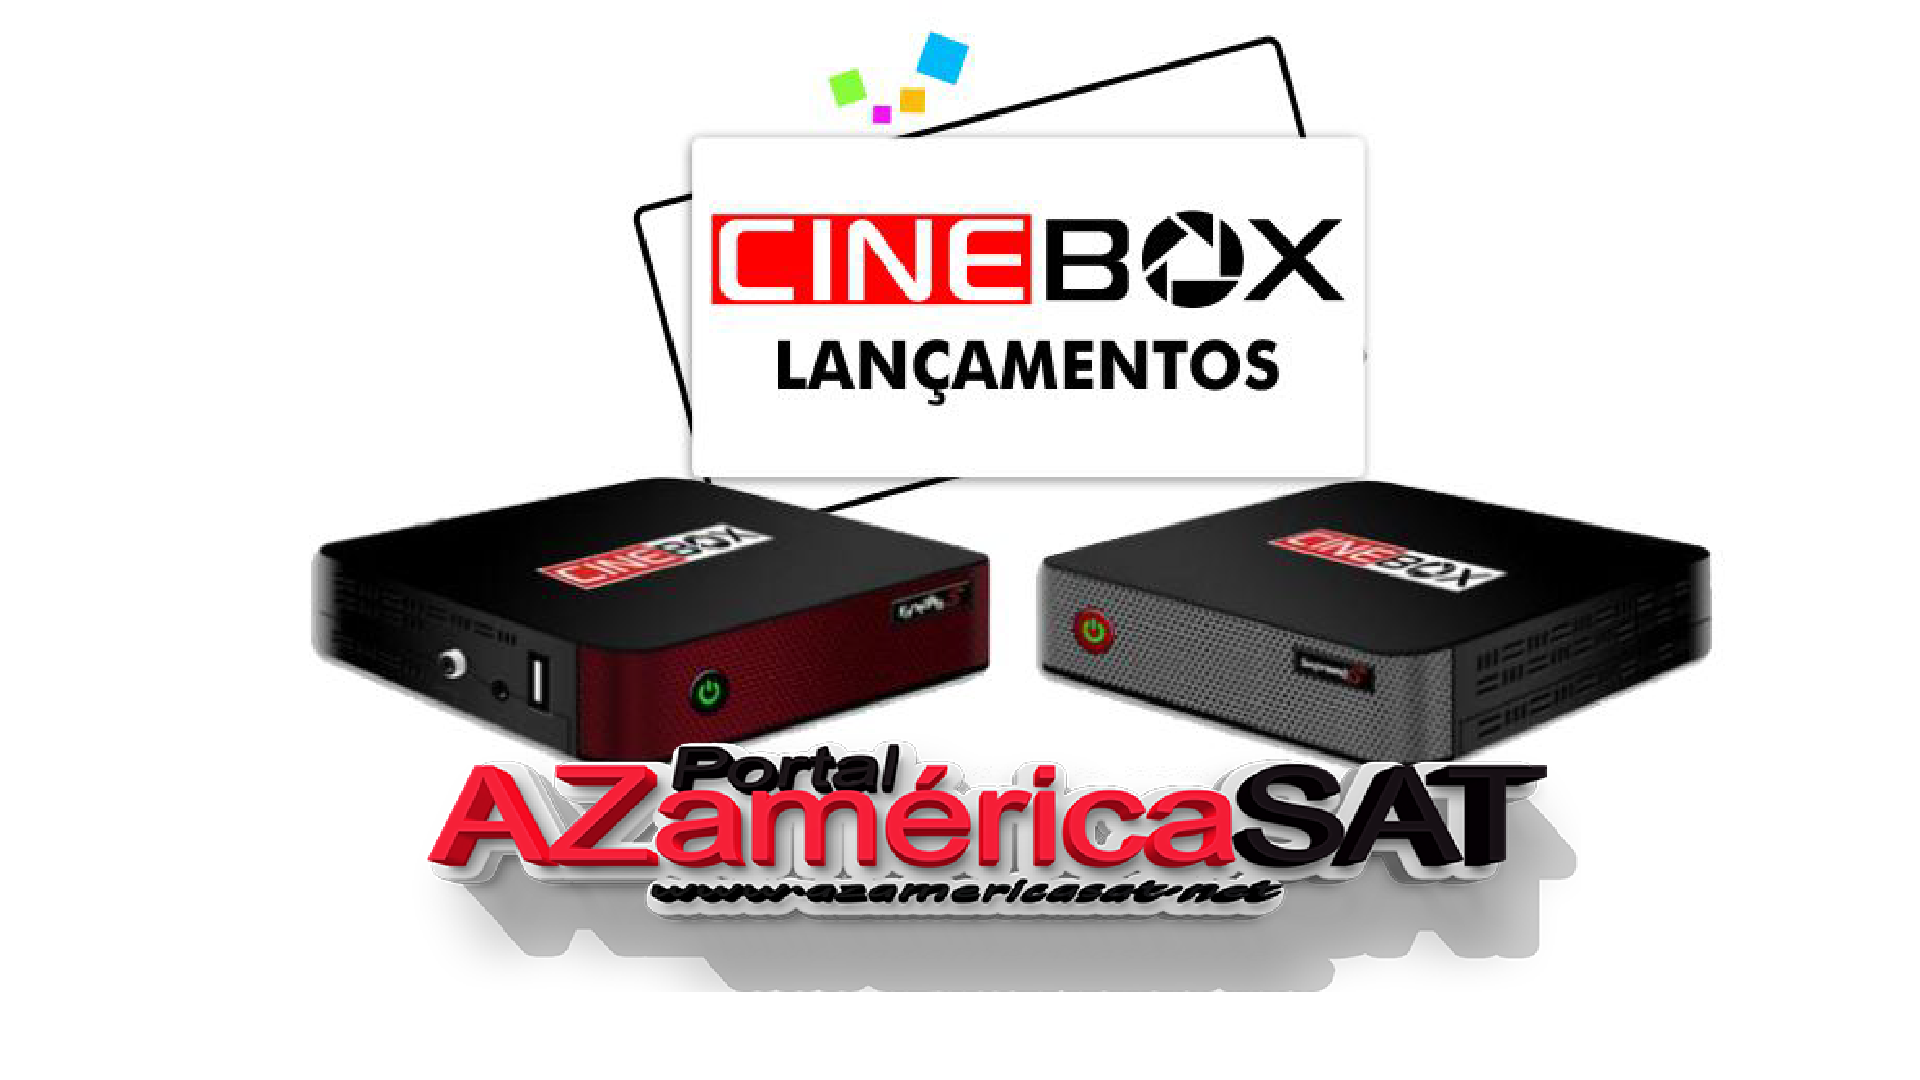 cinebox fantasia S e Cinebox Supremo S